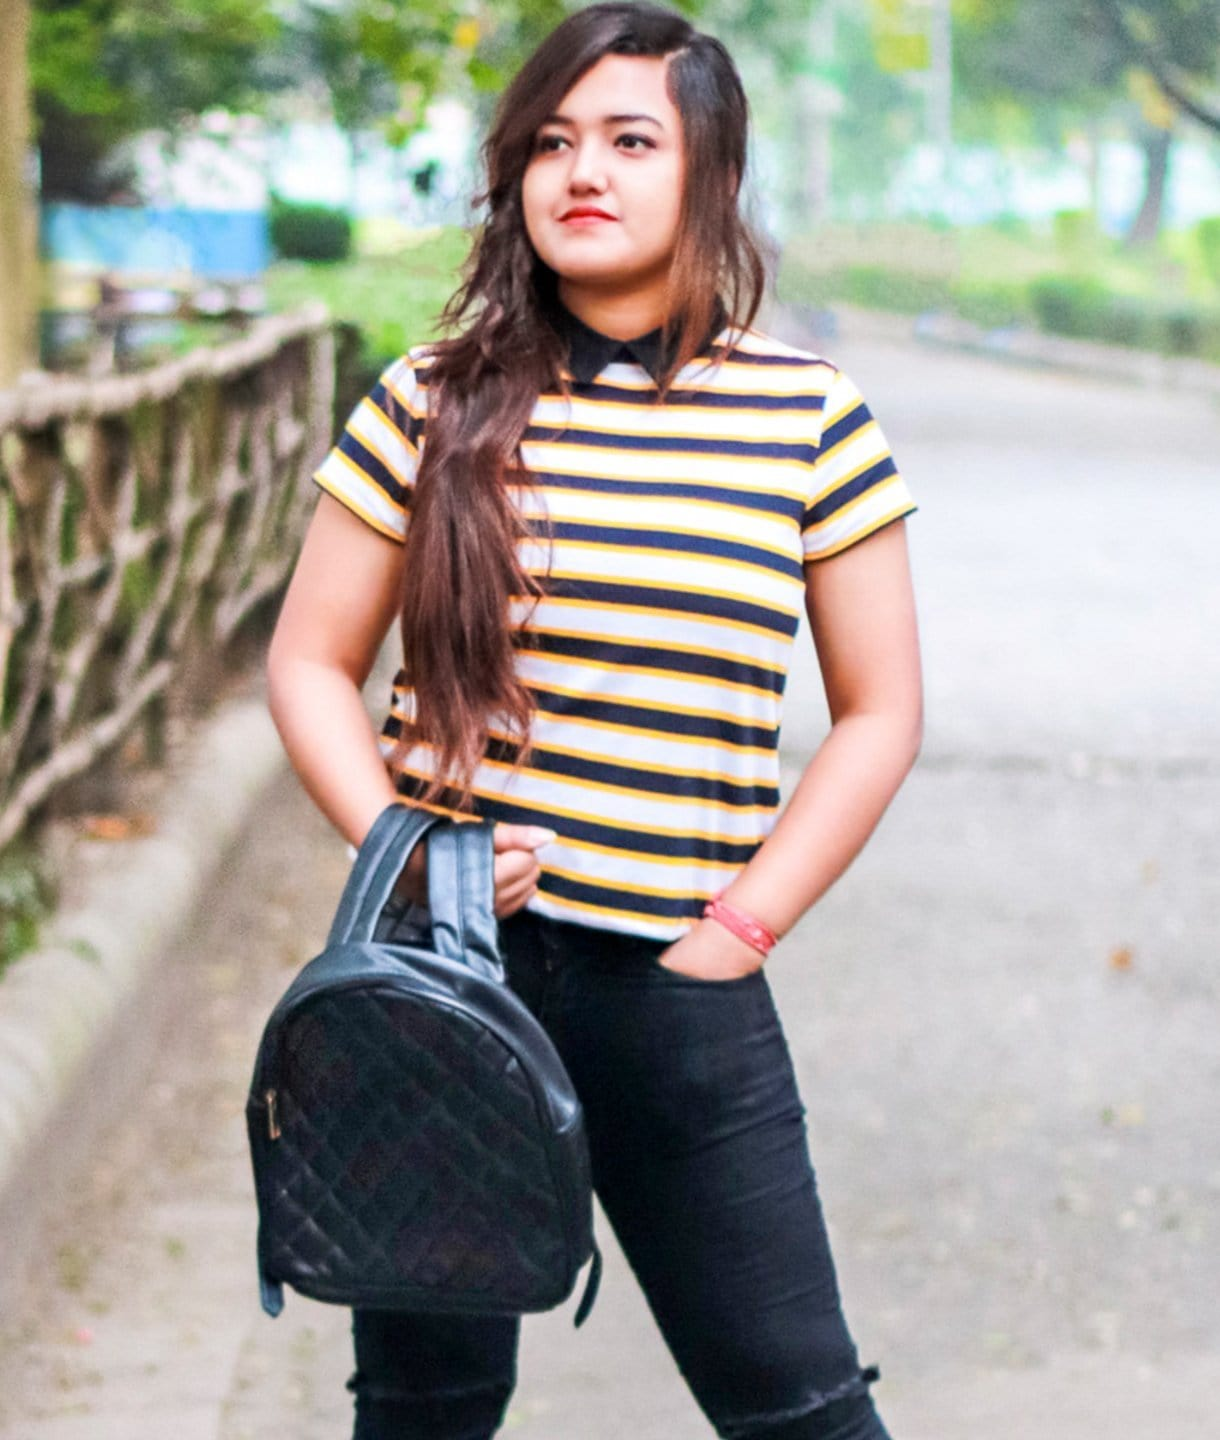 Striped Yellow & Black T-shirt - GET FREE GIFT